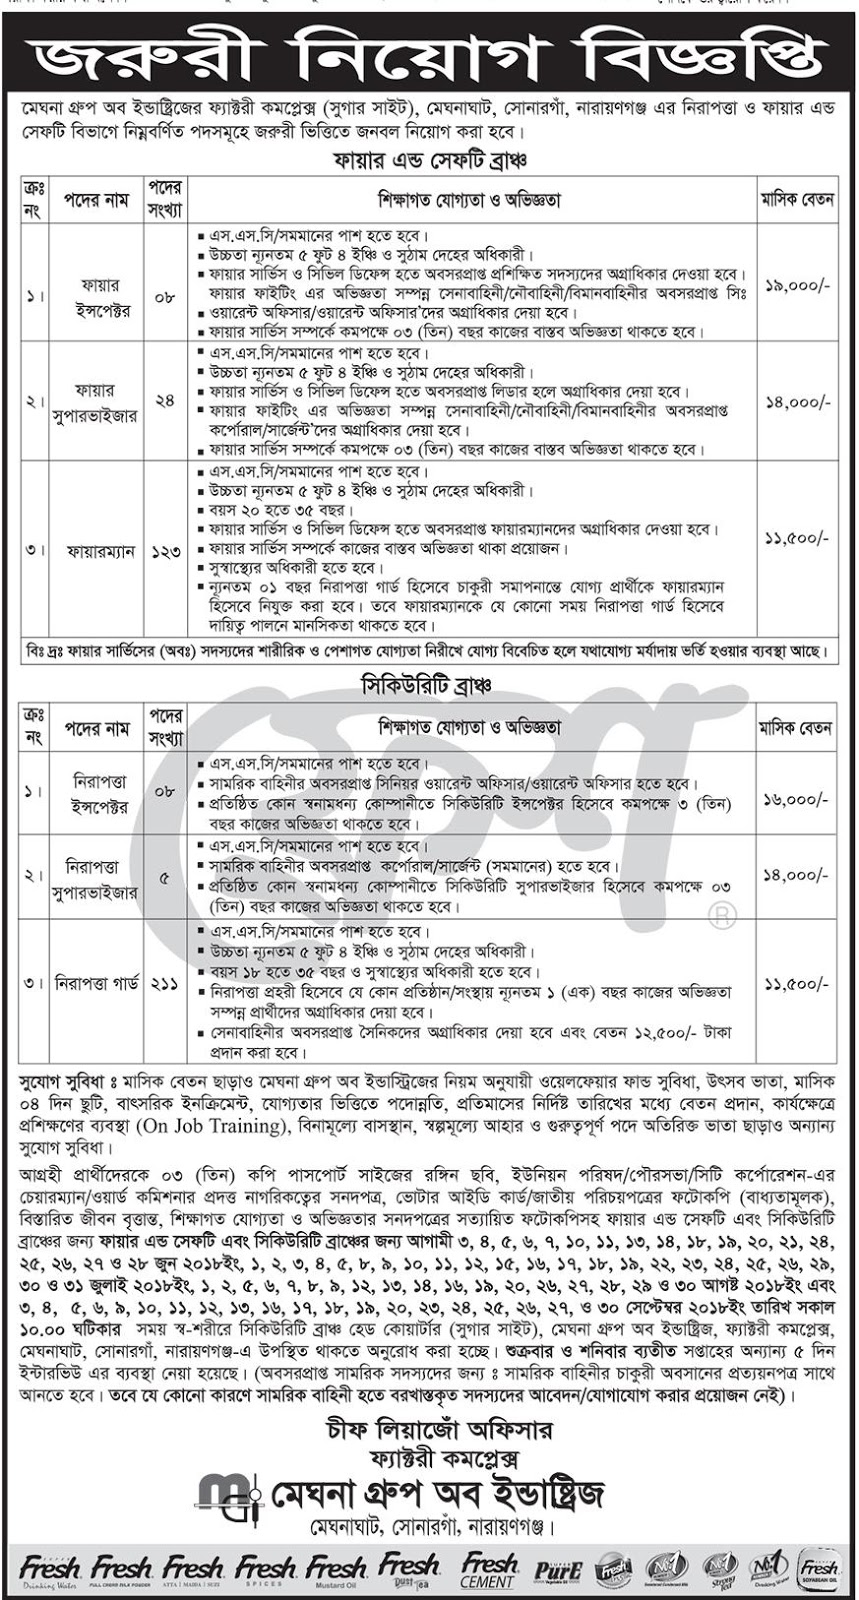 Meghna Group of Industries Job Circular 2018